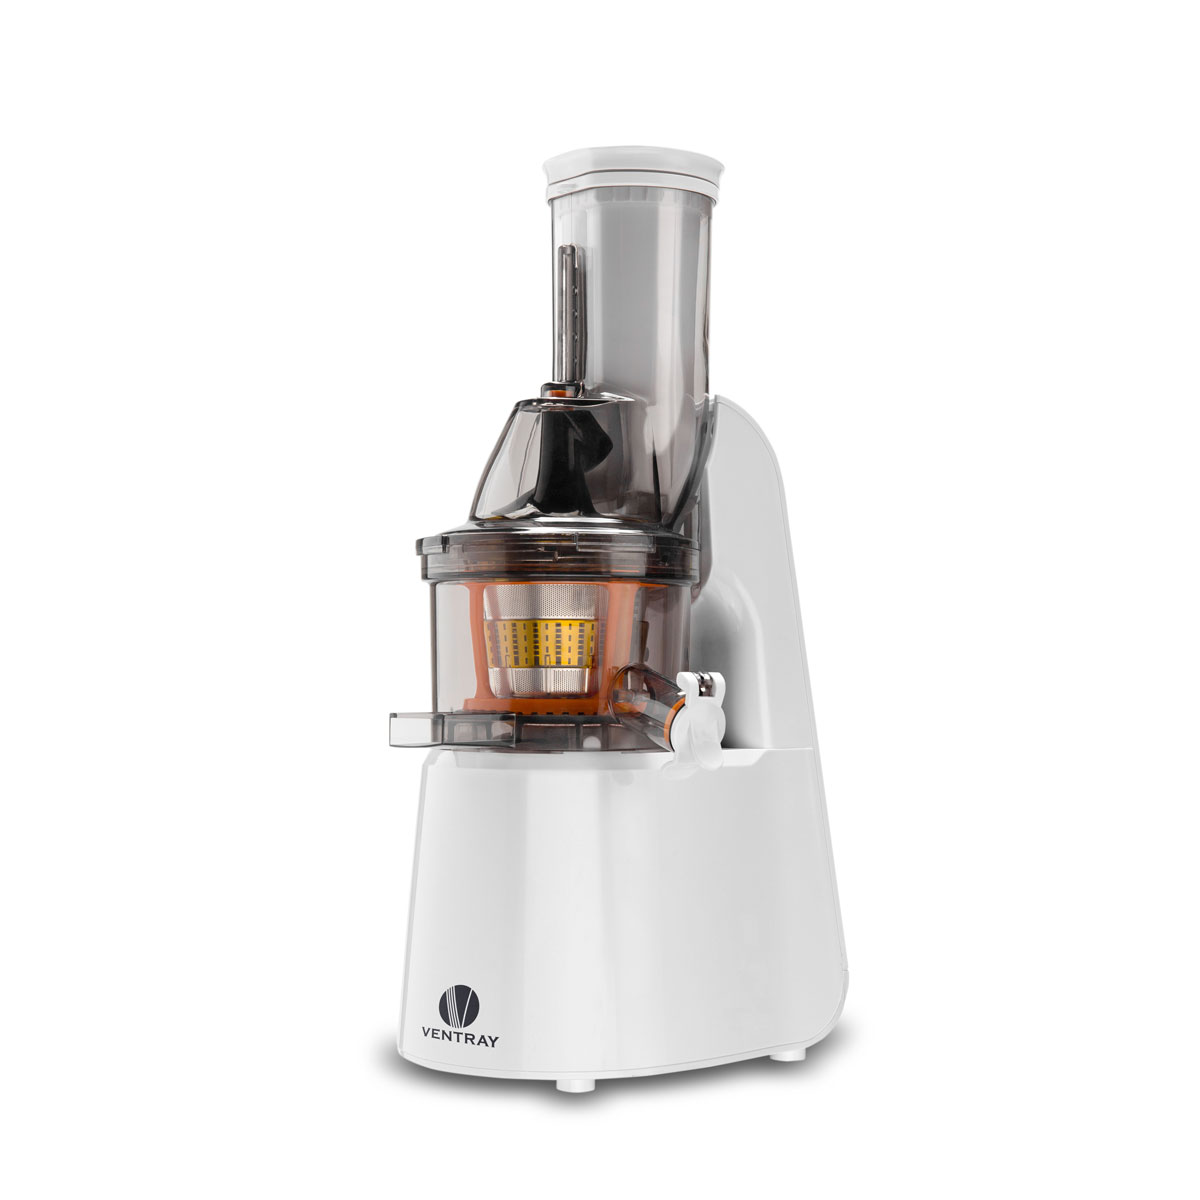 ventray Kitchen Appliances, Countertop Small Appliances, Juicer, Blender